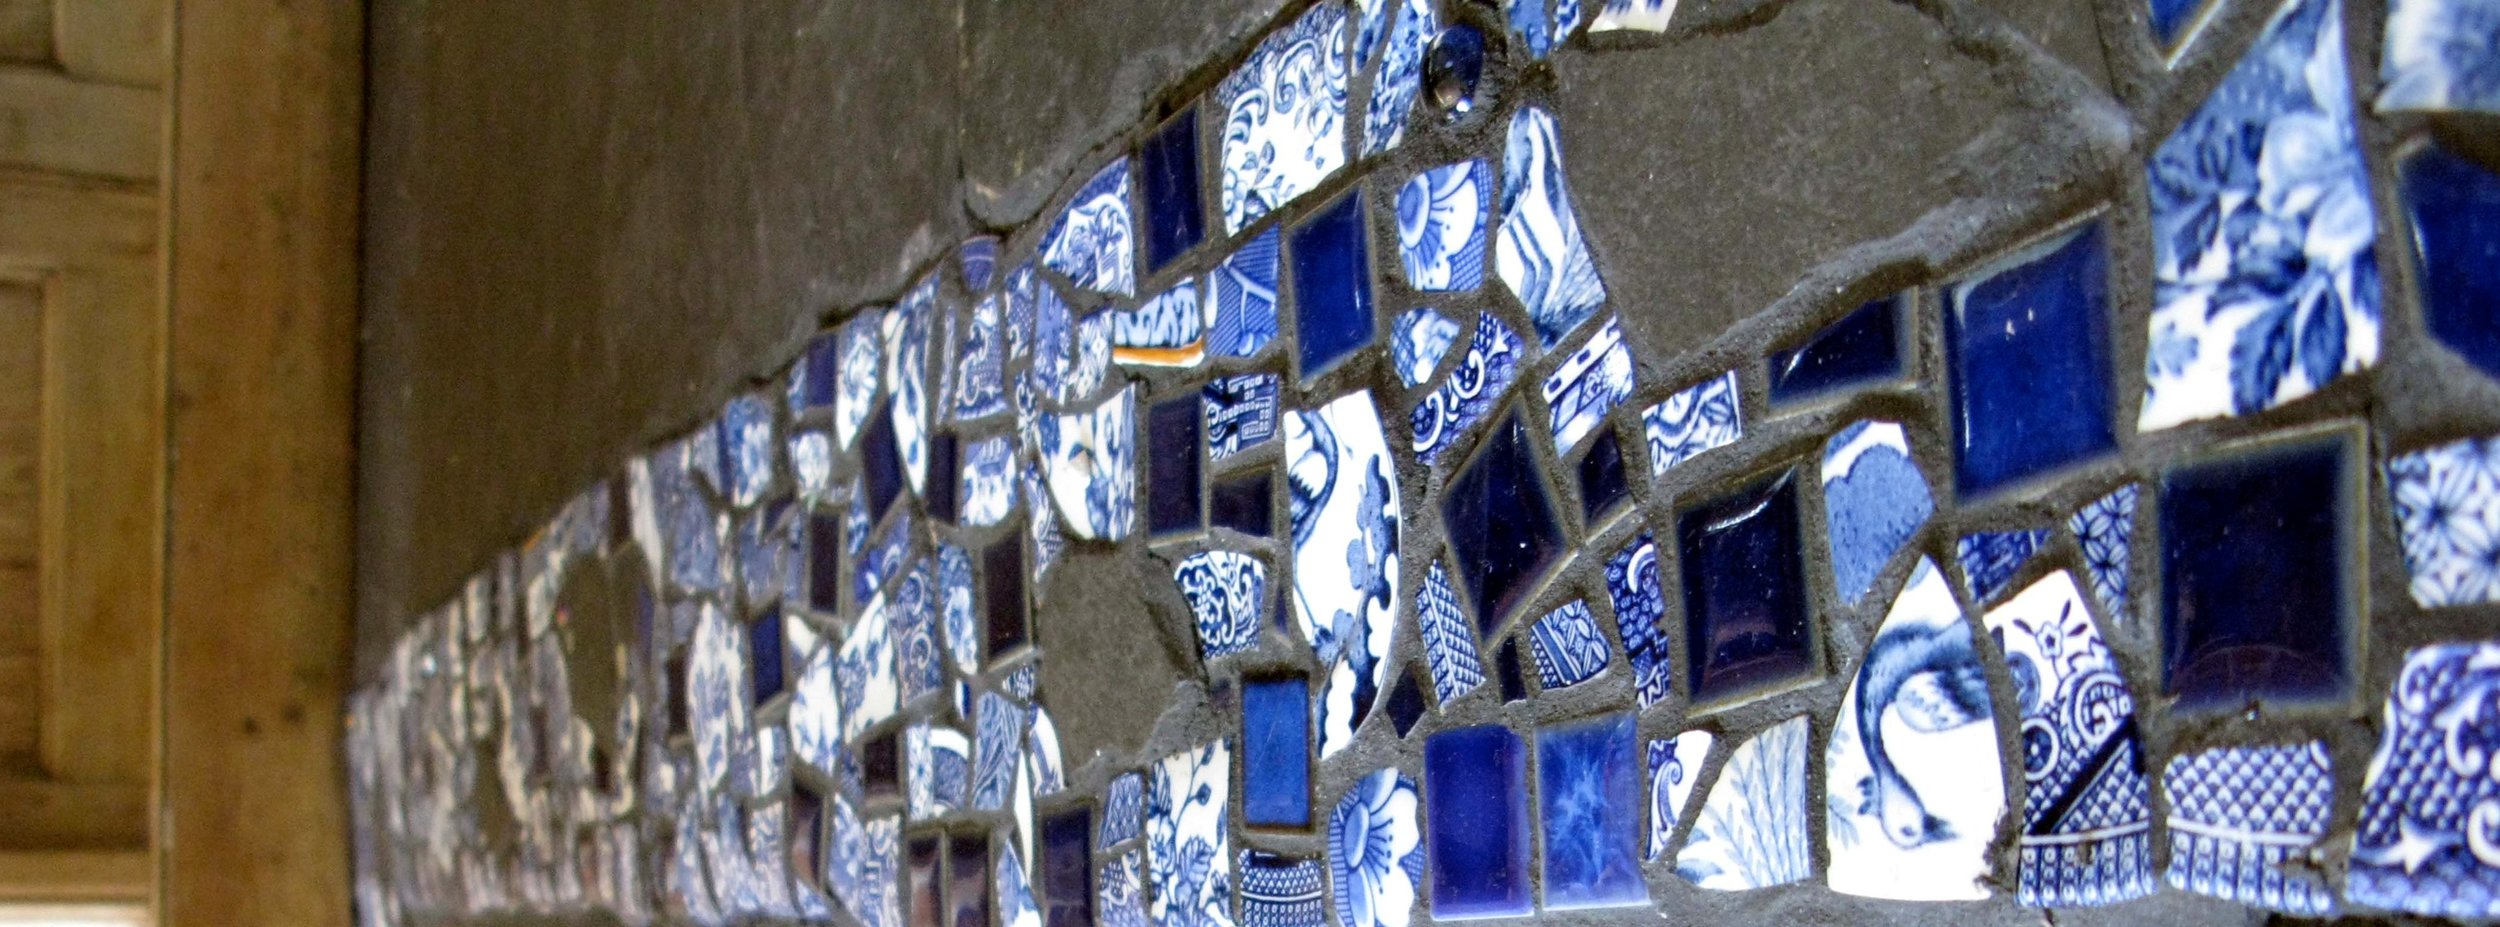 Mosaic floor inlay when a partition wall comes down ... recycled blue stoneware, ceramic and Welsh slate.